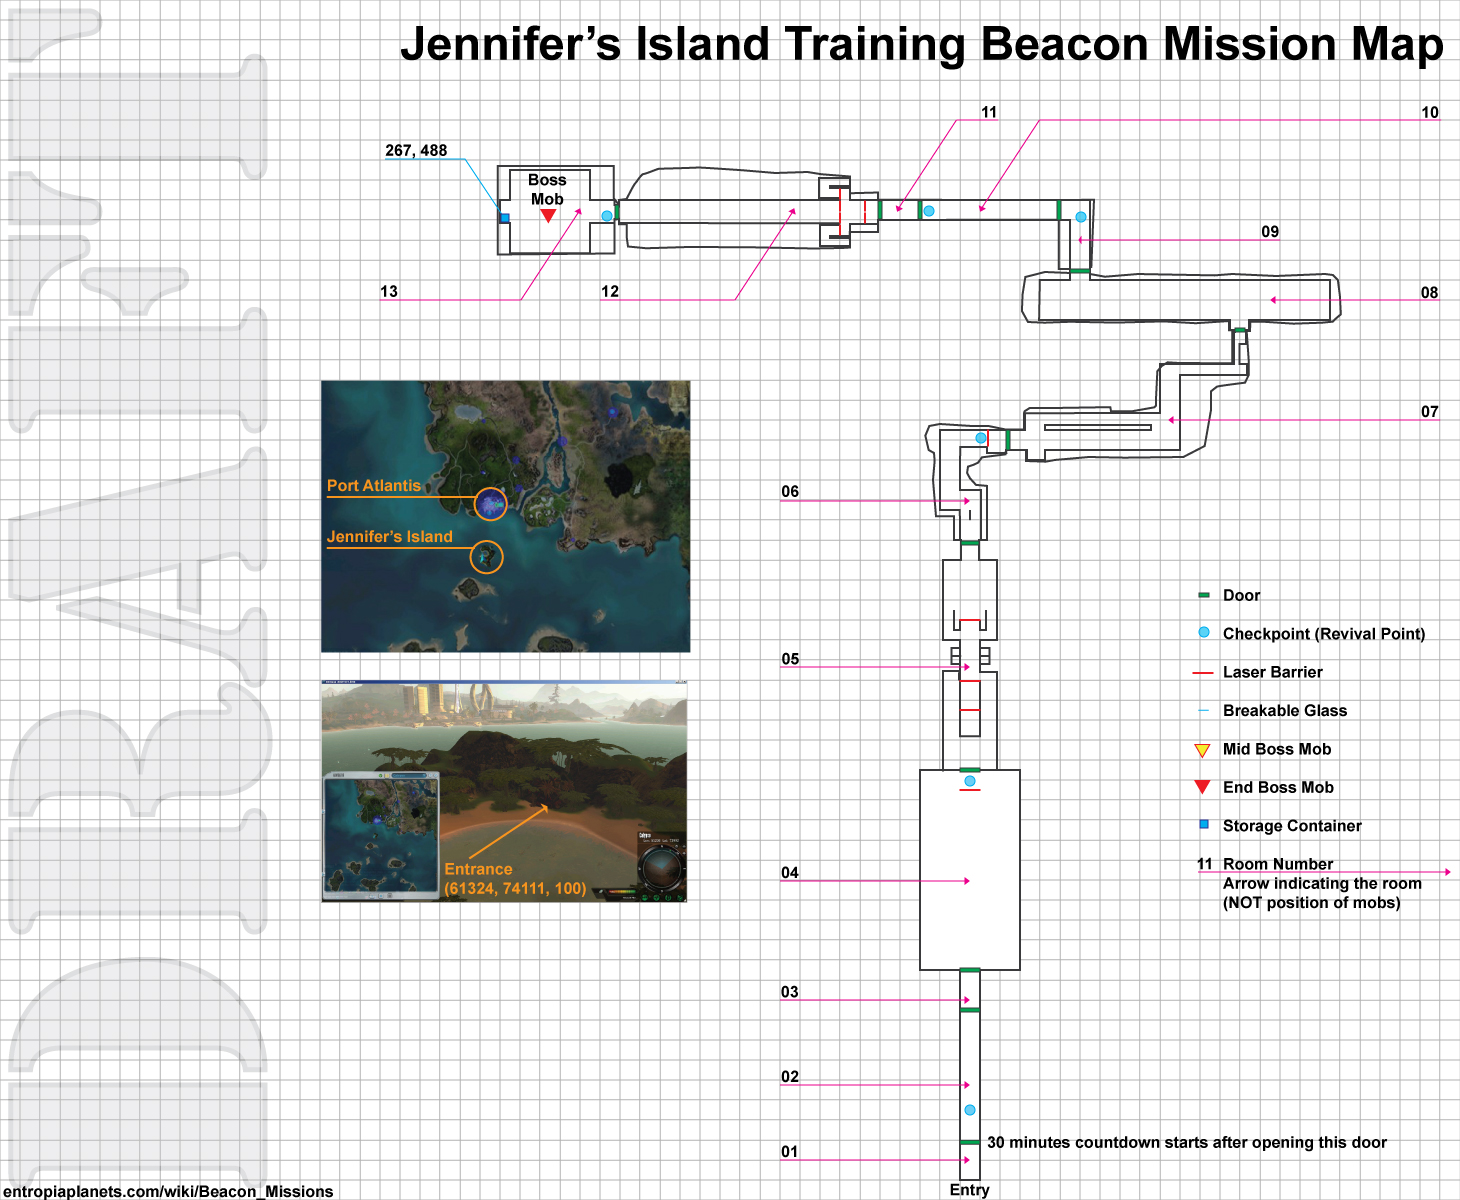 Jennifers Island Training Beacon Mission Map.jpg